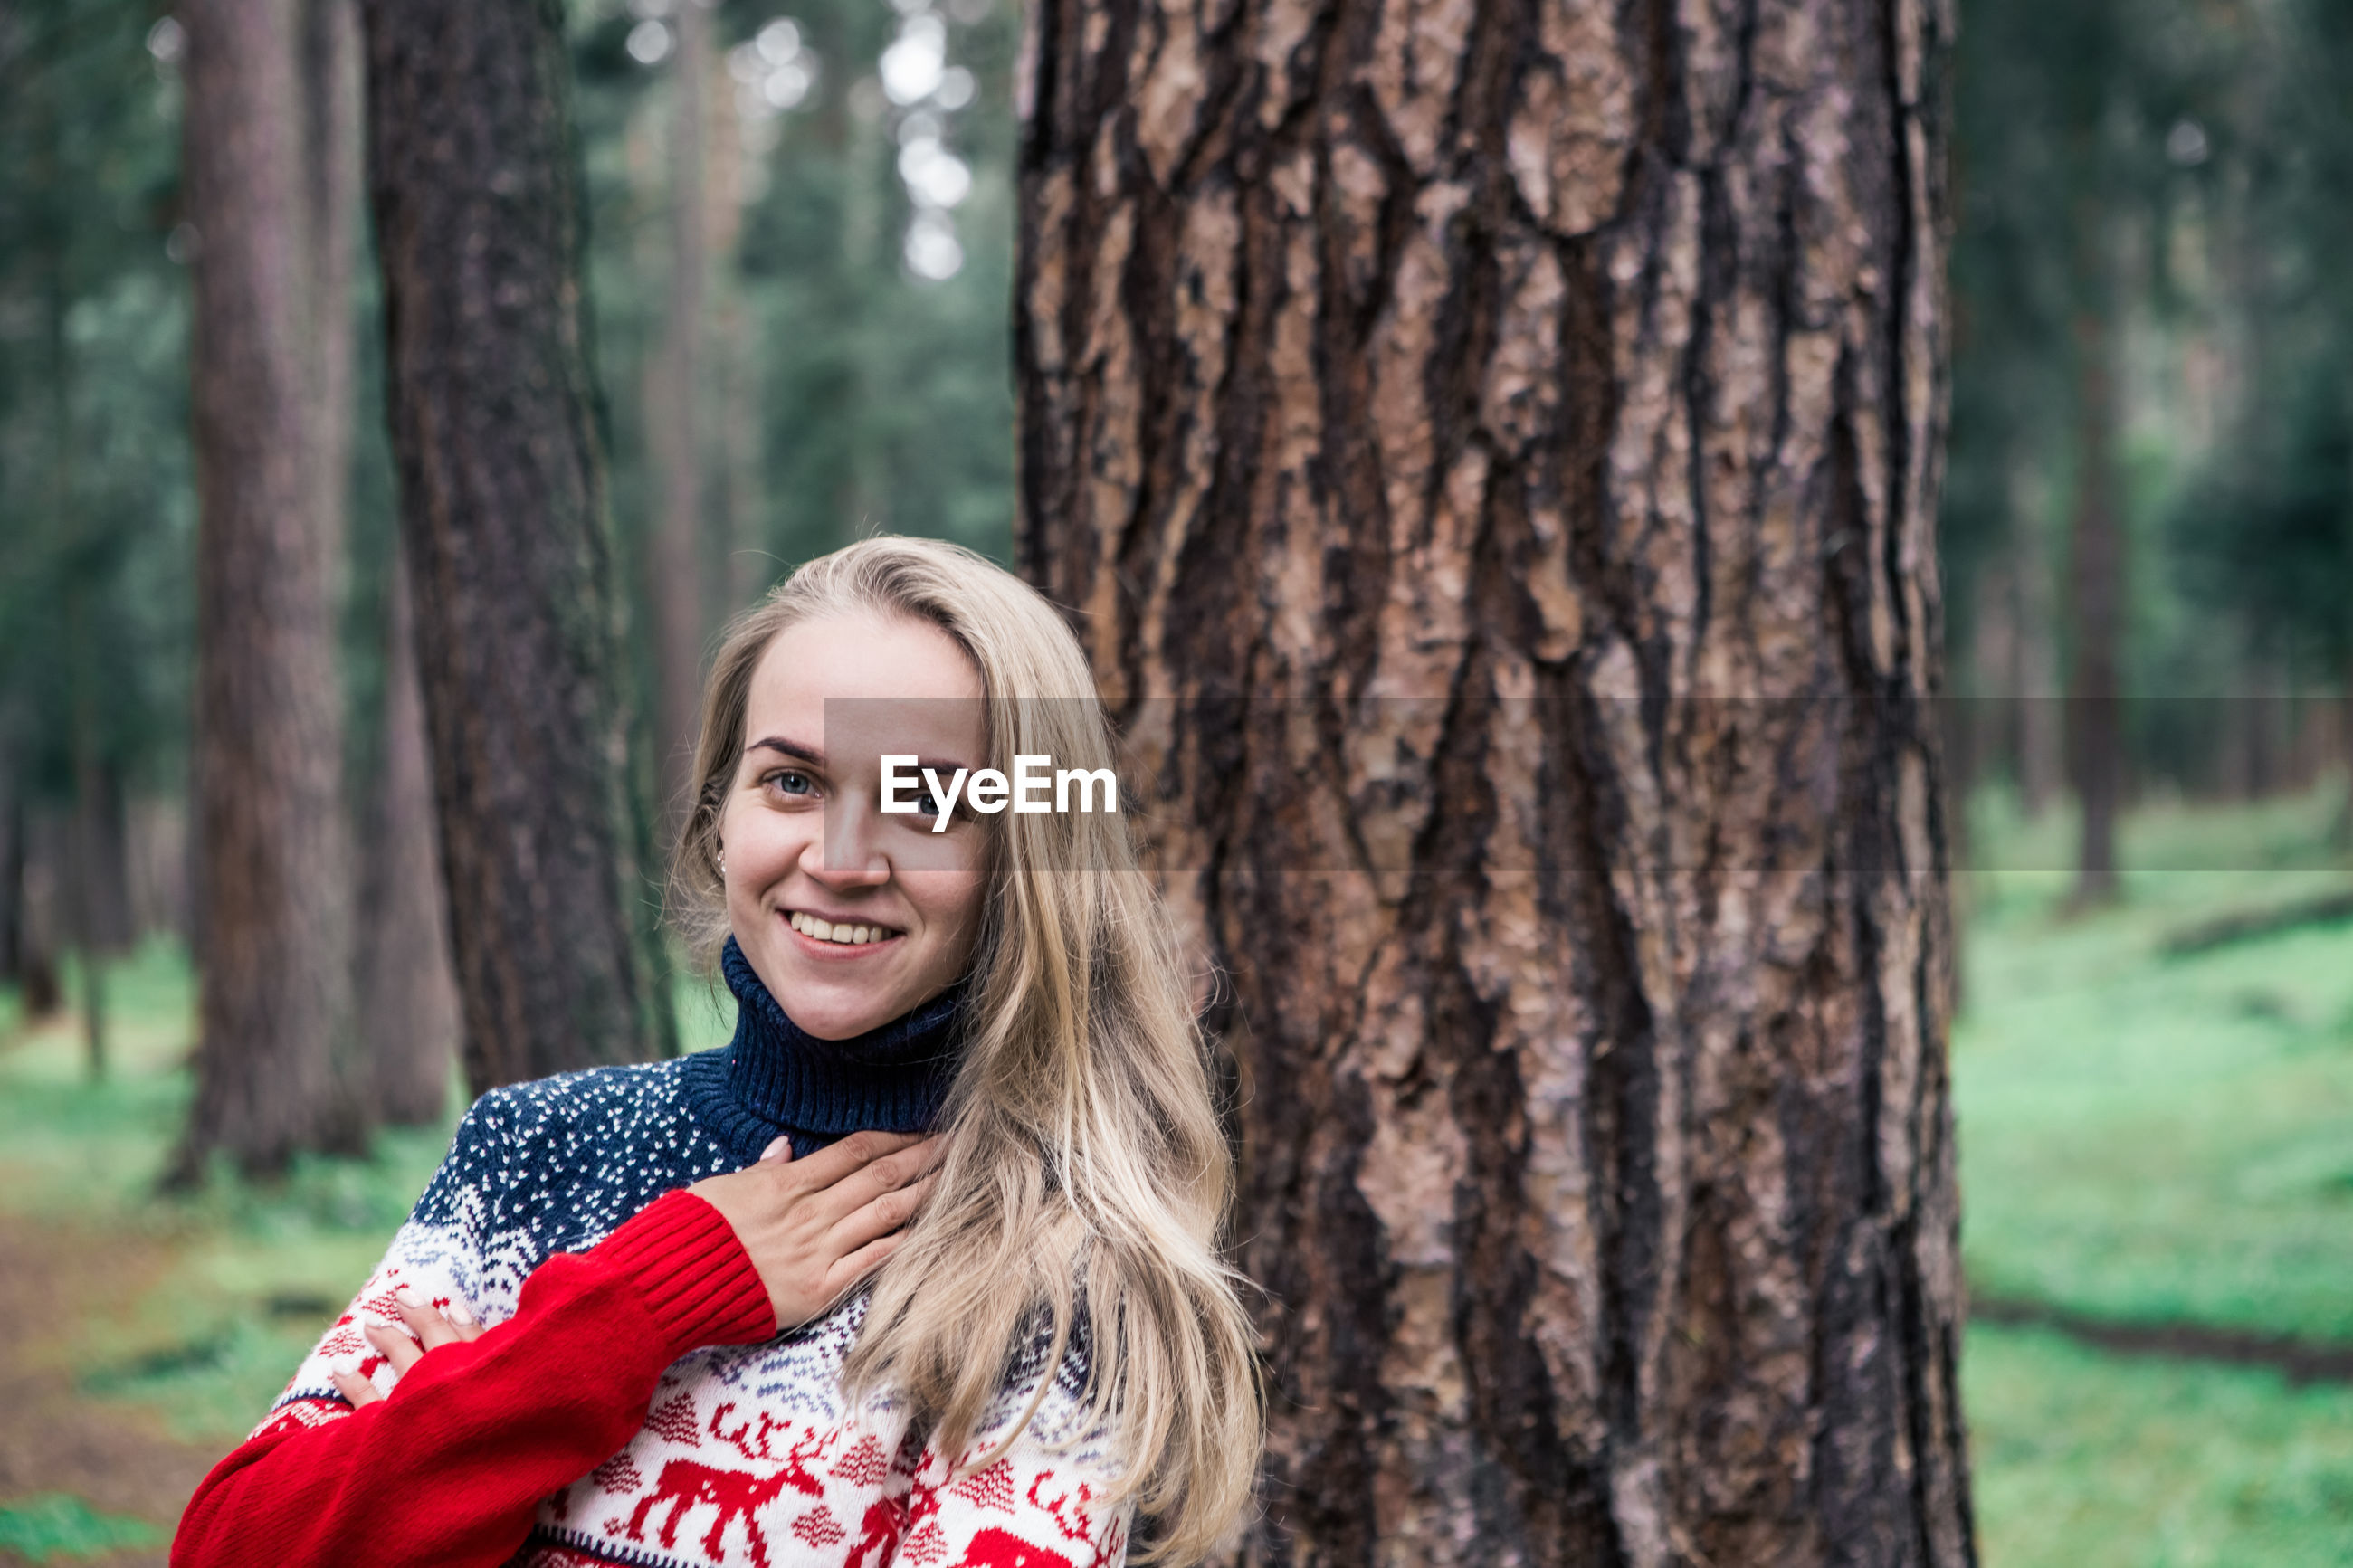 Portrait of woman smiling while standing in forest